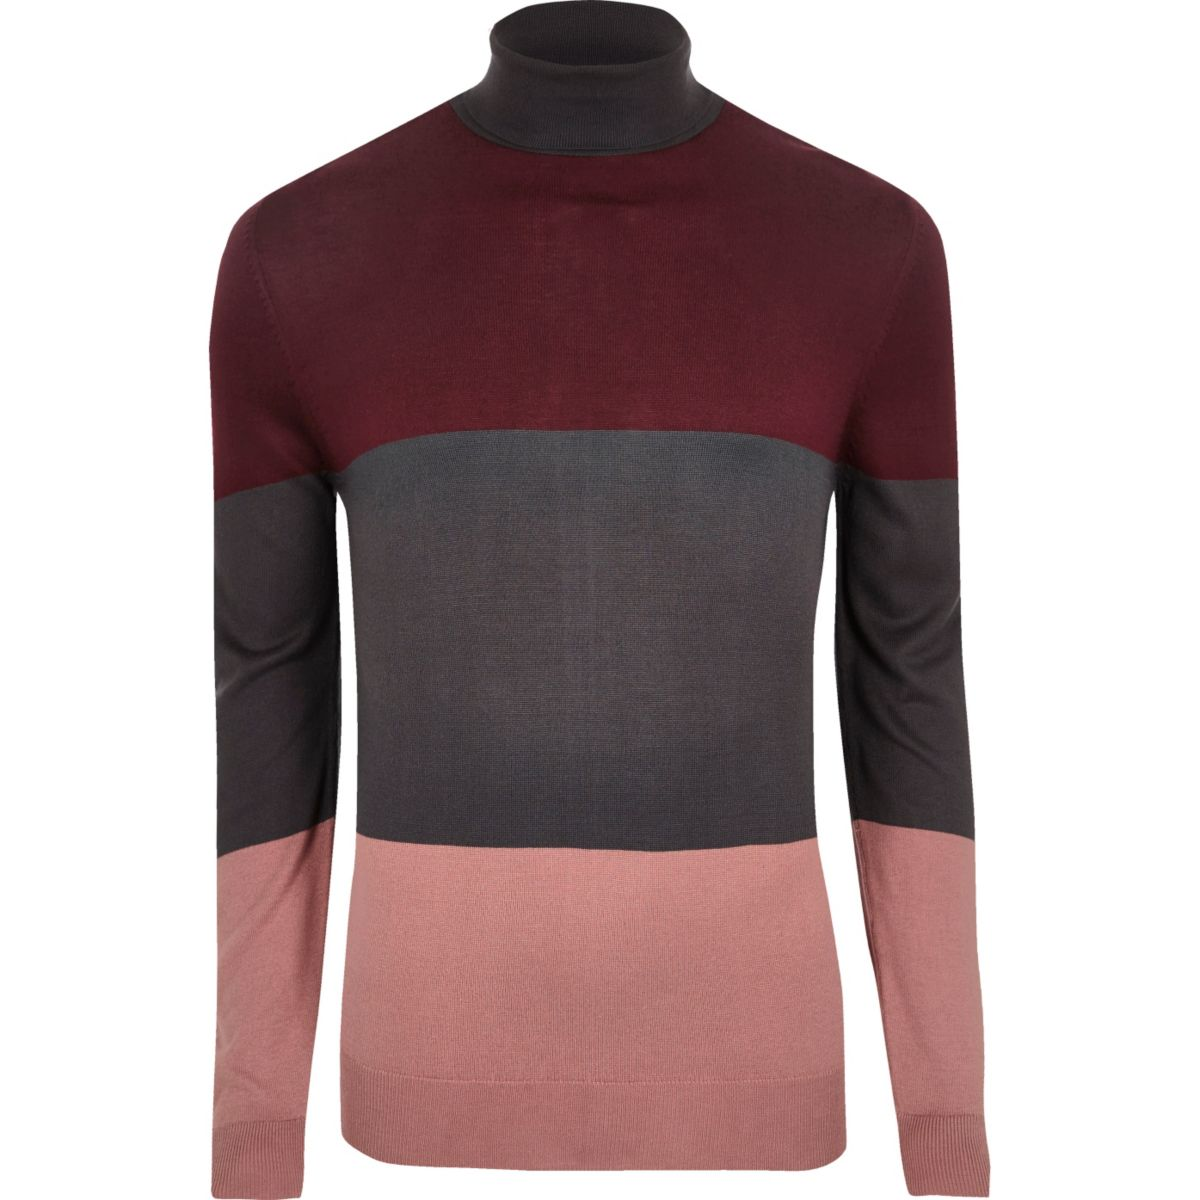 Charcoal grey color block roll neck sweater